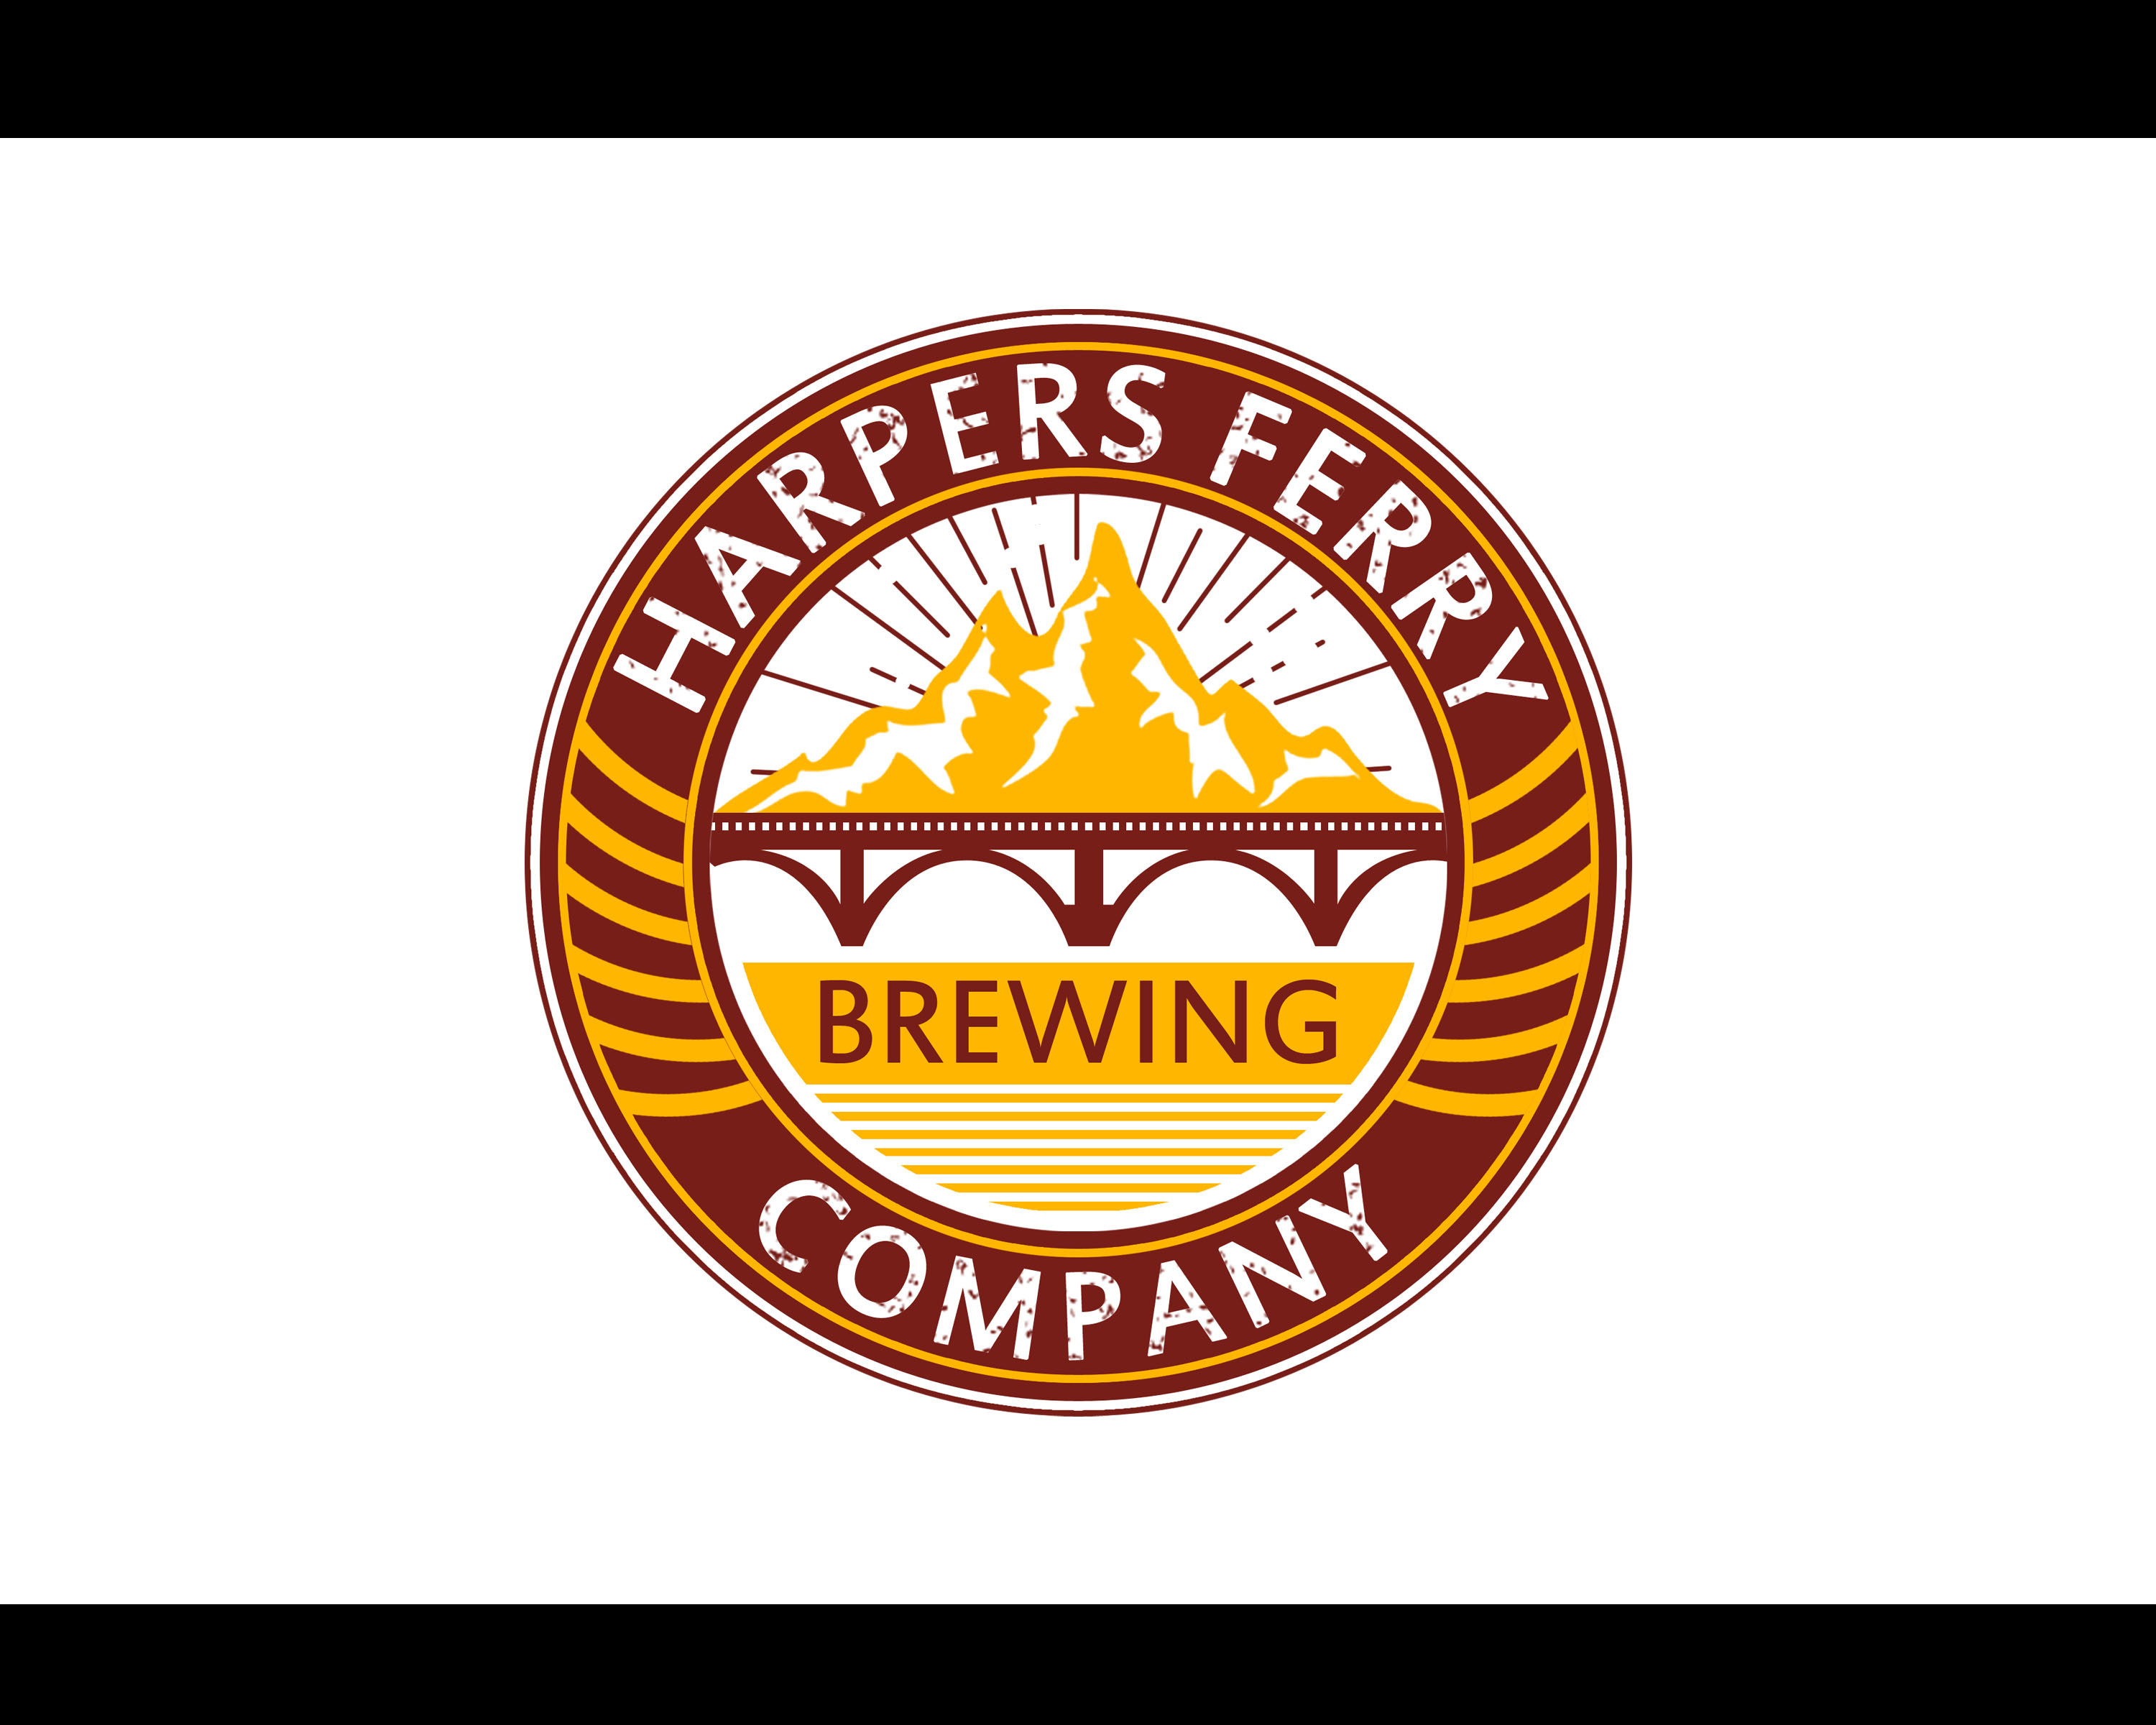 Logo Design by Ian jade Laman - Entry No. 121 in the Logo Design Contest Unique Logo Design Wanted for Harpers ferry brewing company.